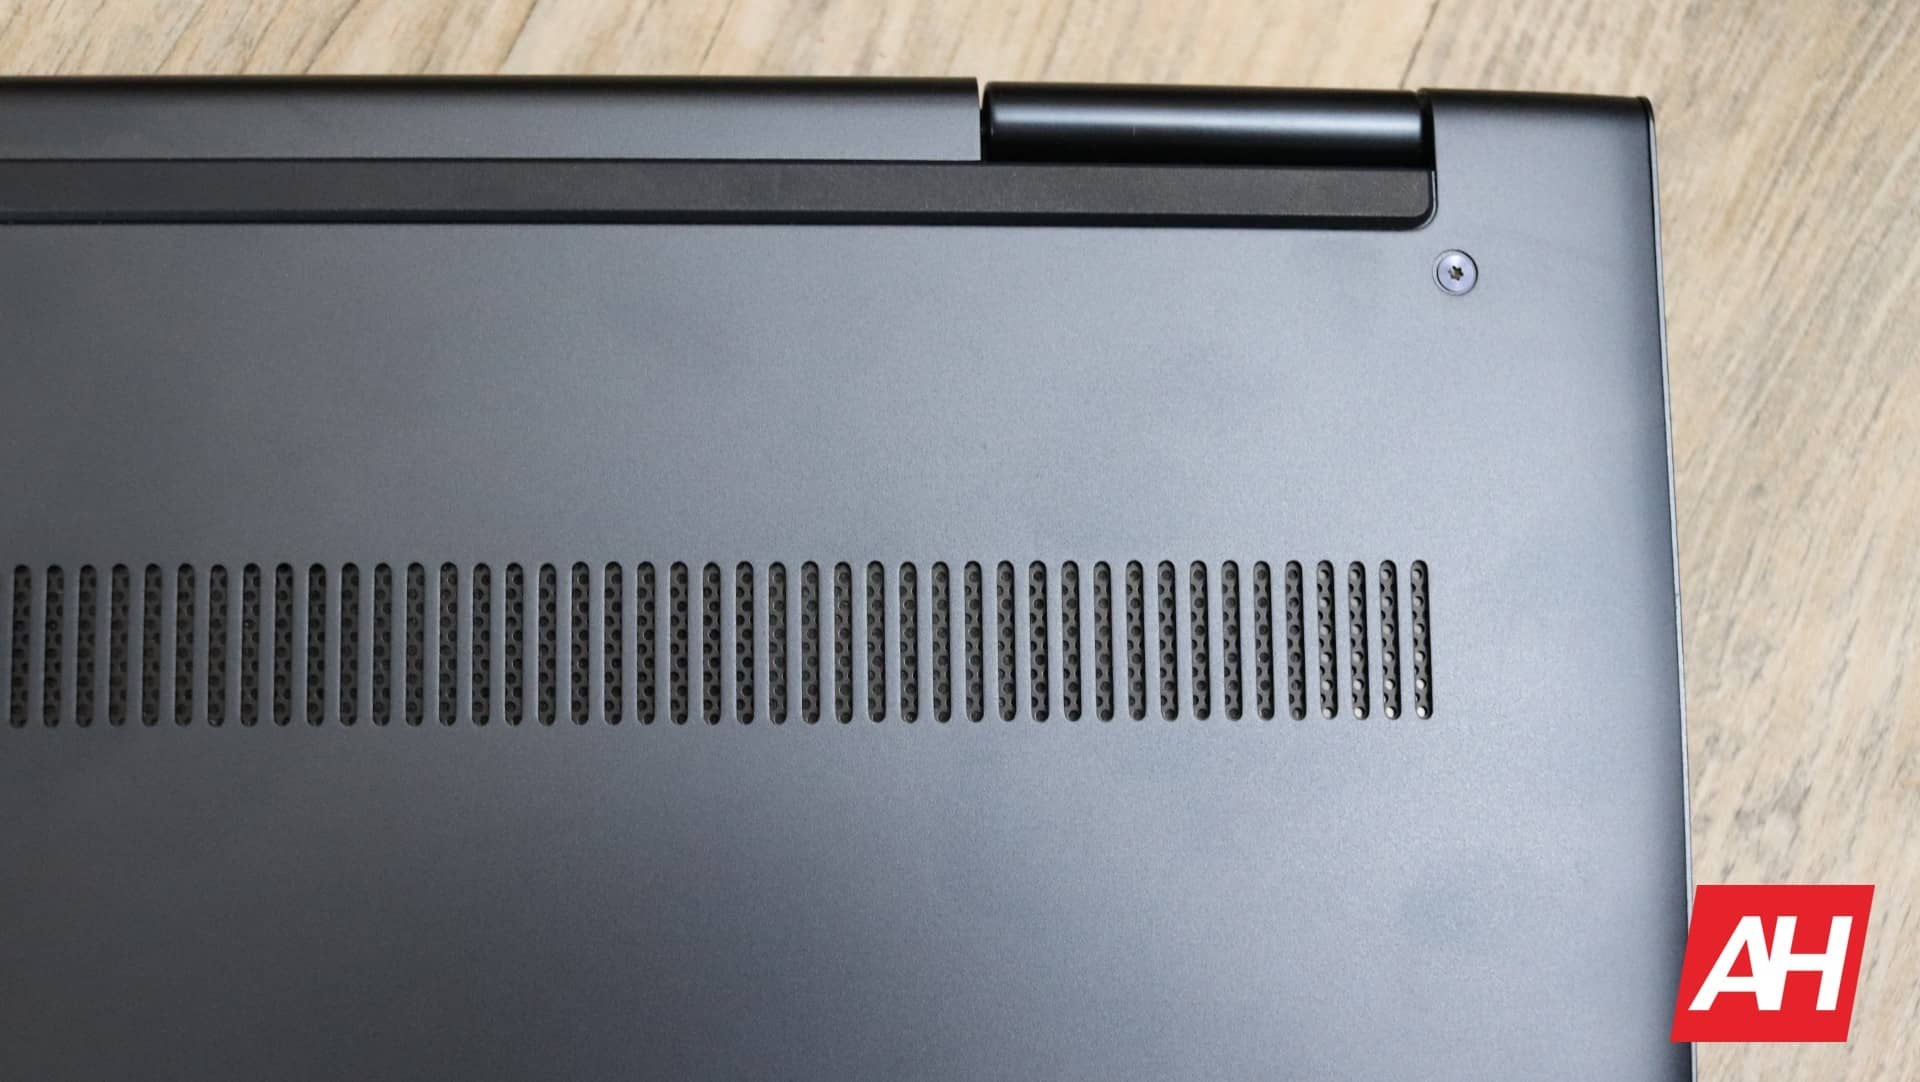 Lenovo Yoga Chromebook C630 Review Hardware AH 19